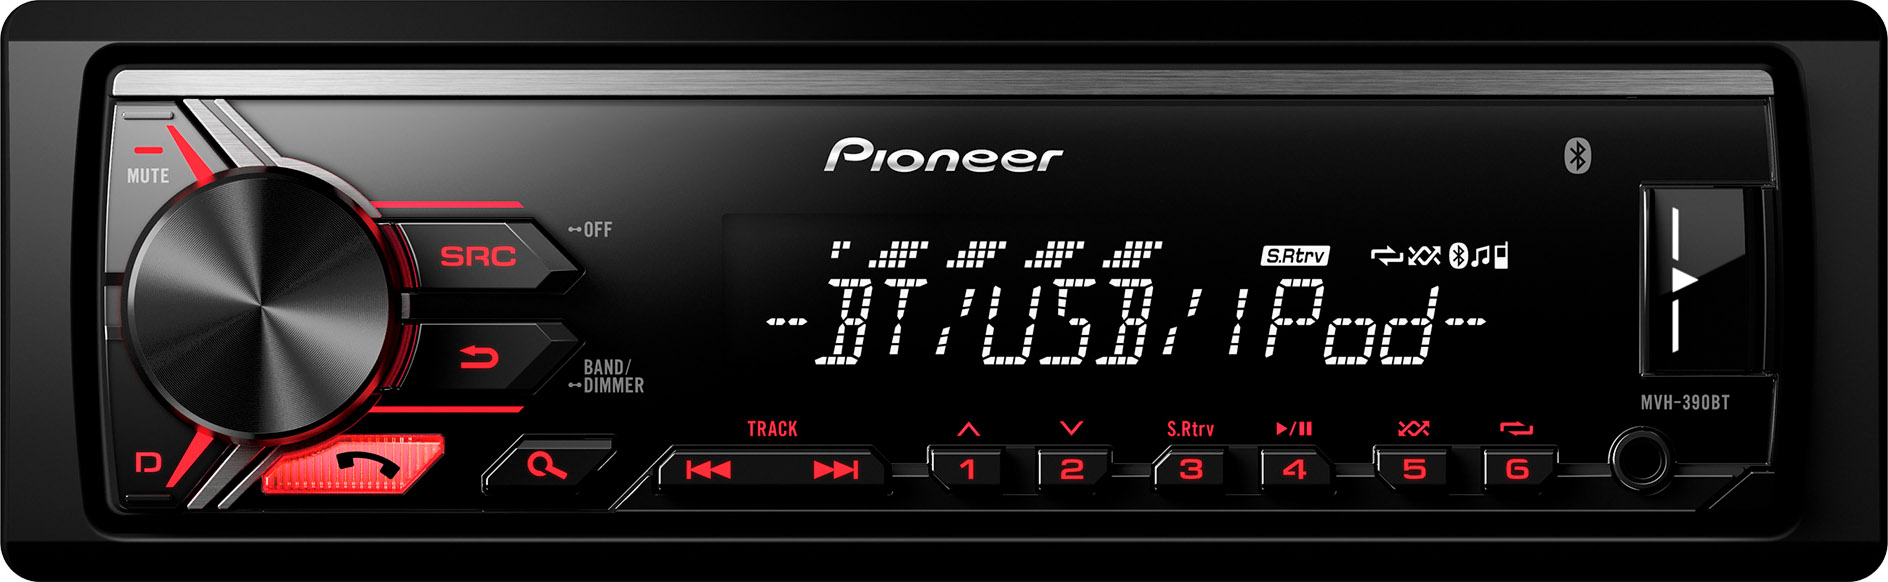 autoradio bluetooth pioneer stereo auto mvh 390bt prezzoforte 132413. Black Bedroom Furniture Sets. Home Design Ideas